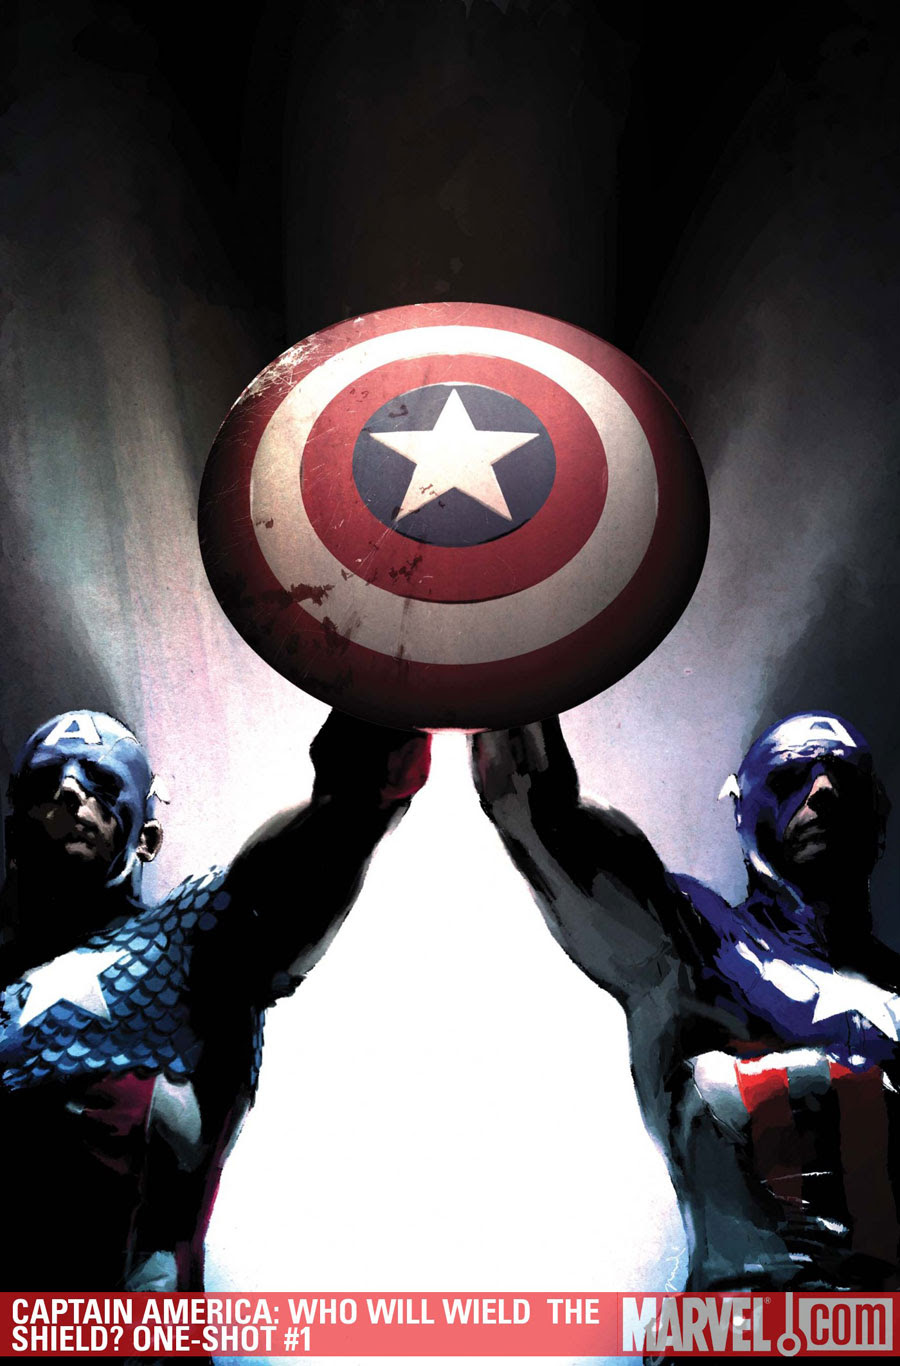 http://jasonhuskins.files.wordpress.com/2012/07/17_captain_america__who_will_wield__the_shield__one_shot_1.jpg